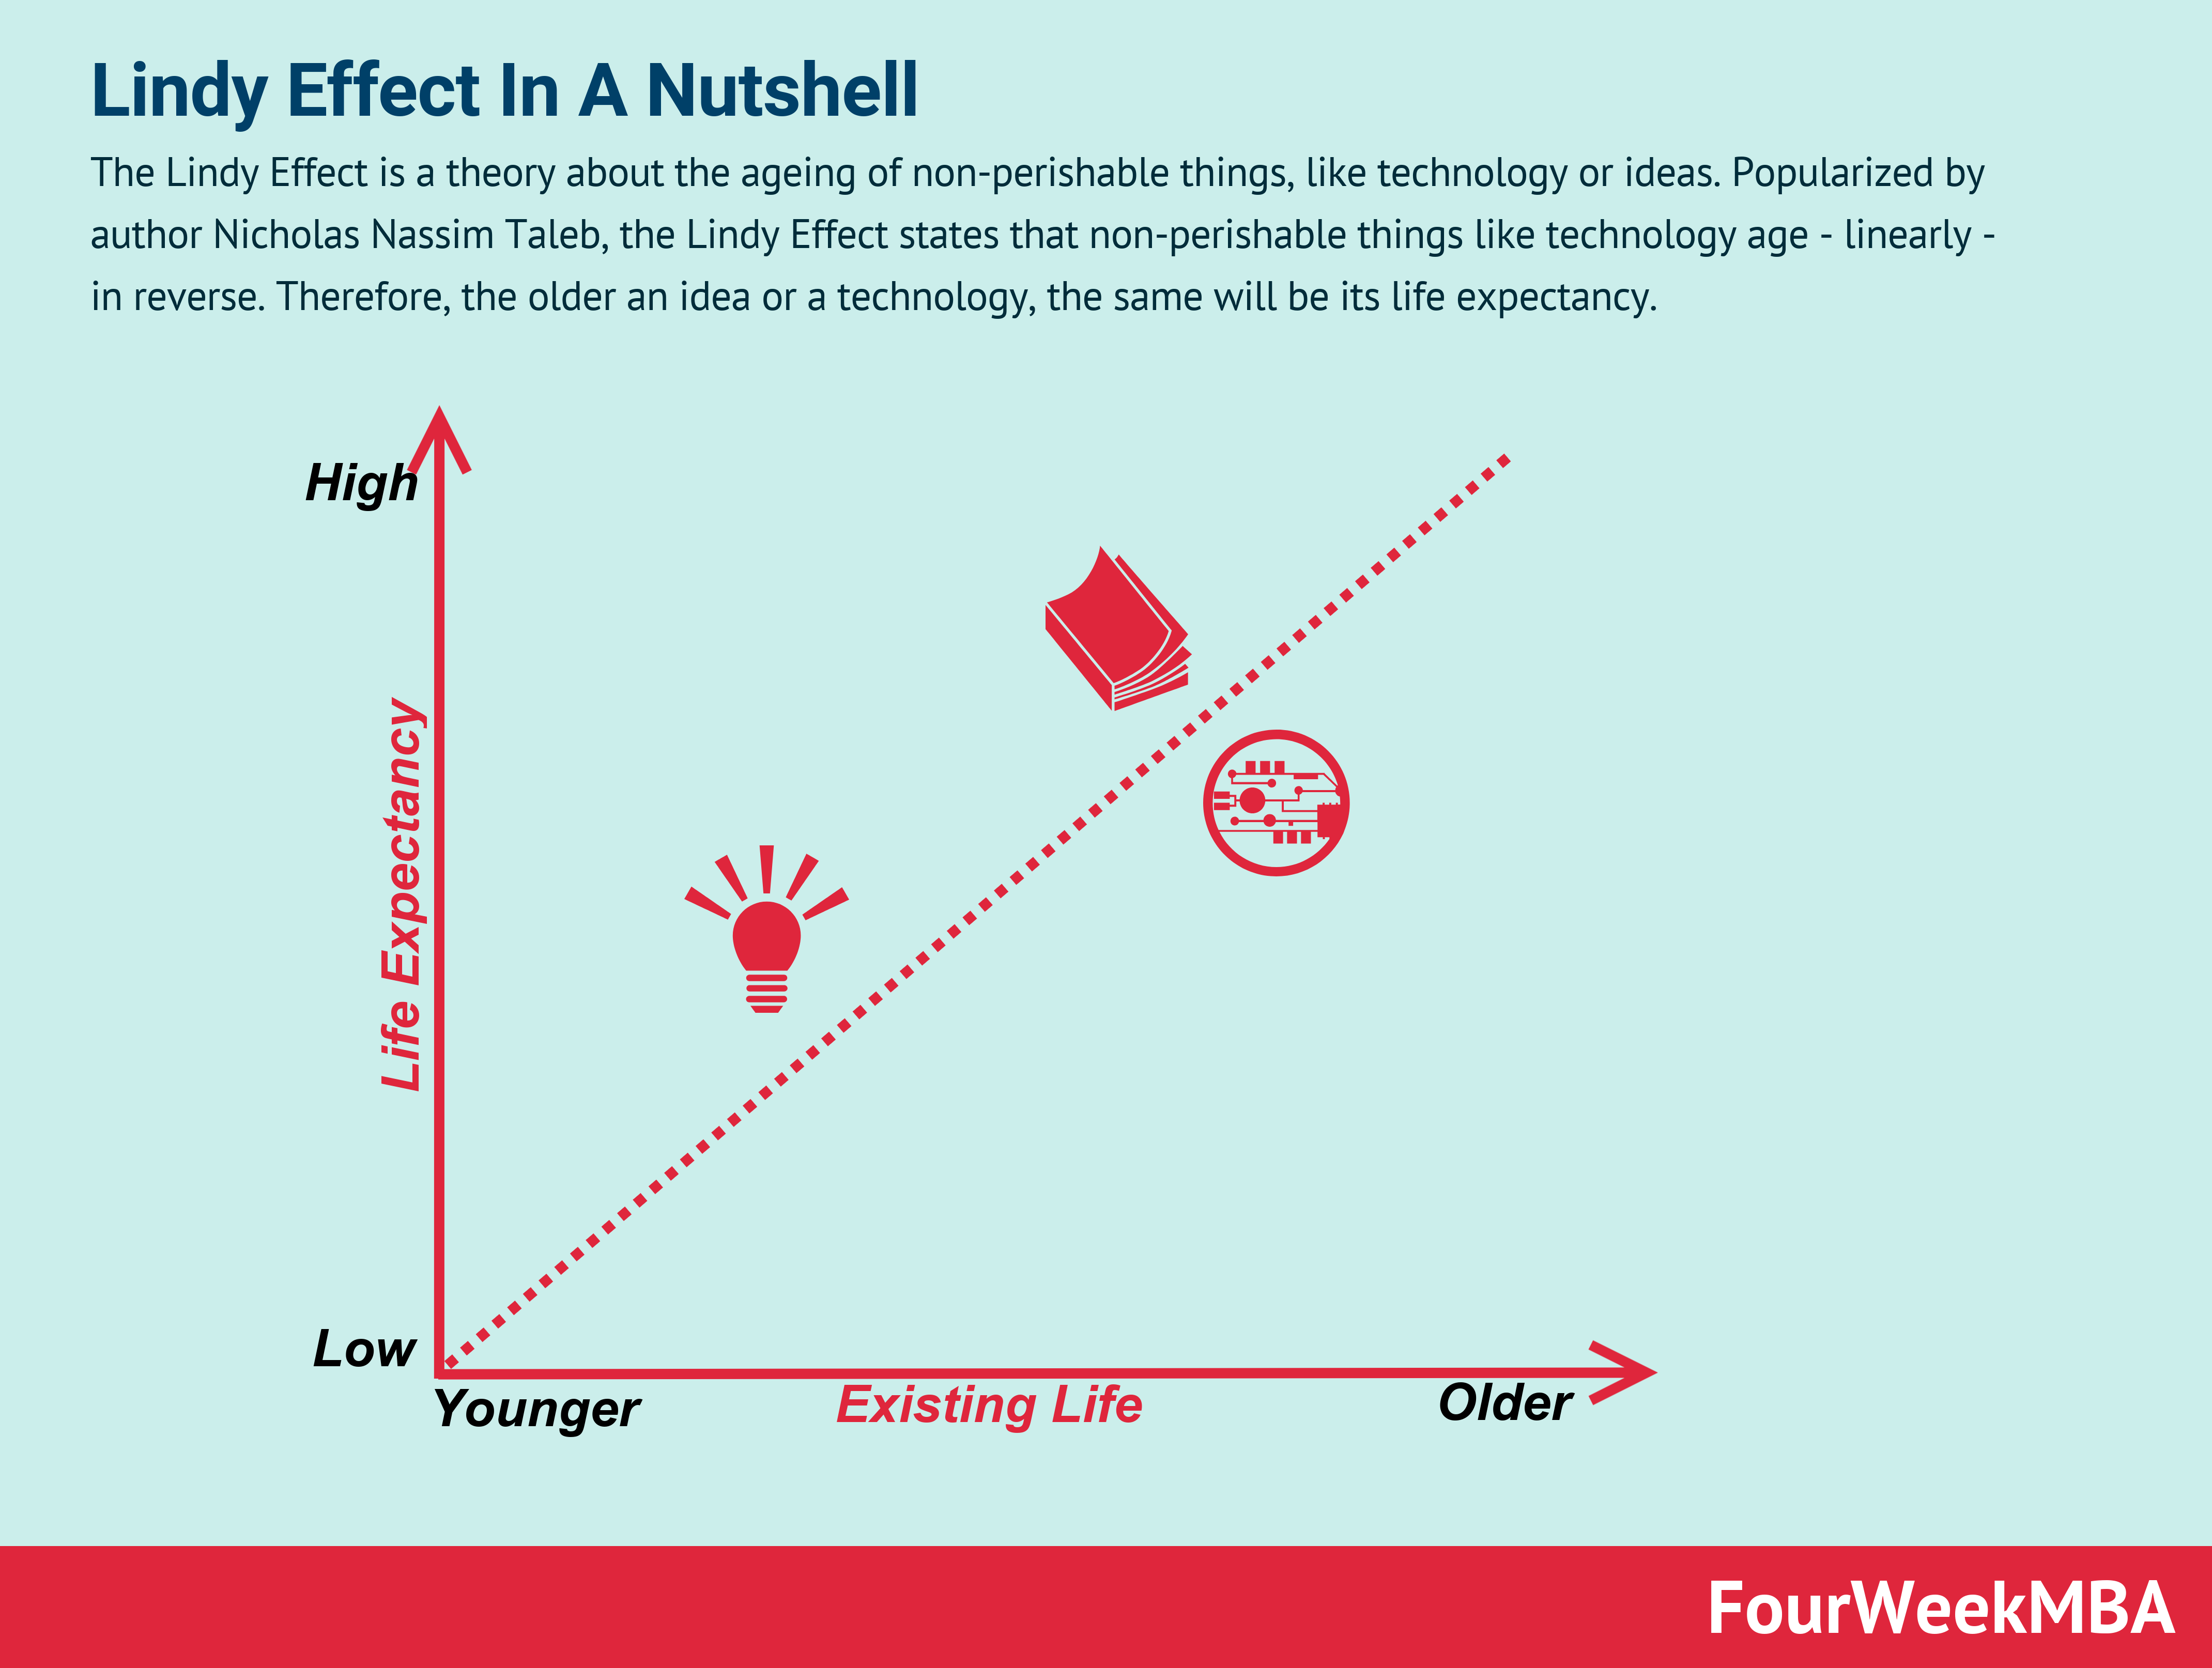 Lindy Effect: Why Ideas And Technologies Might Age In Reverse